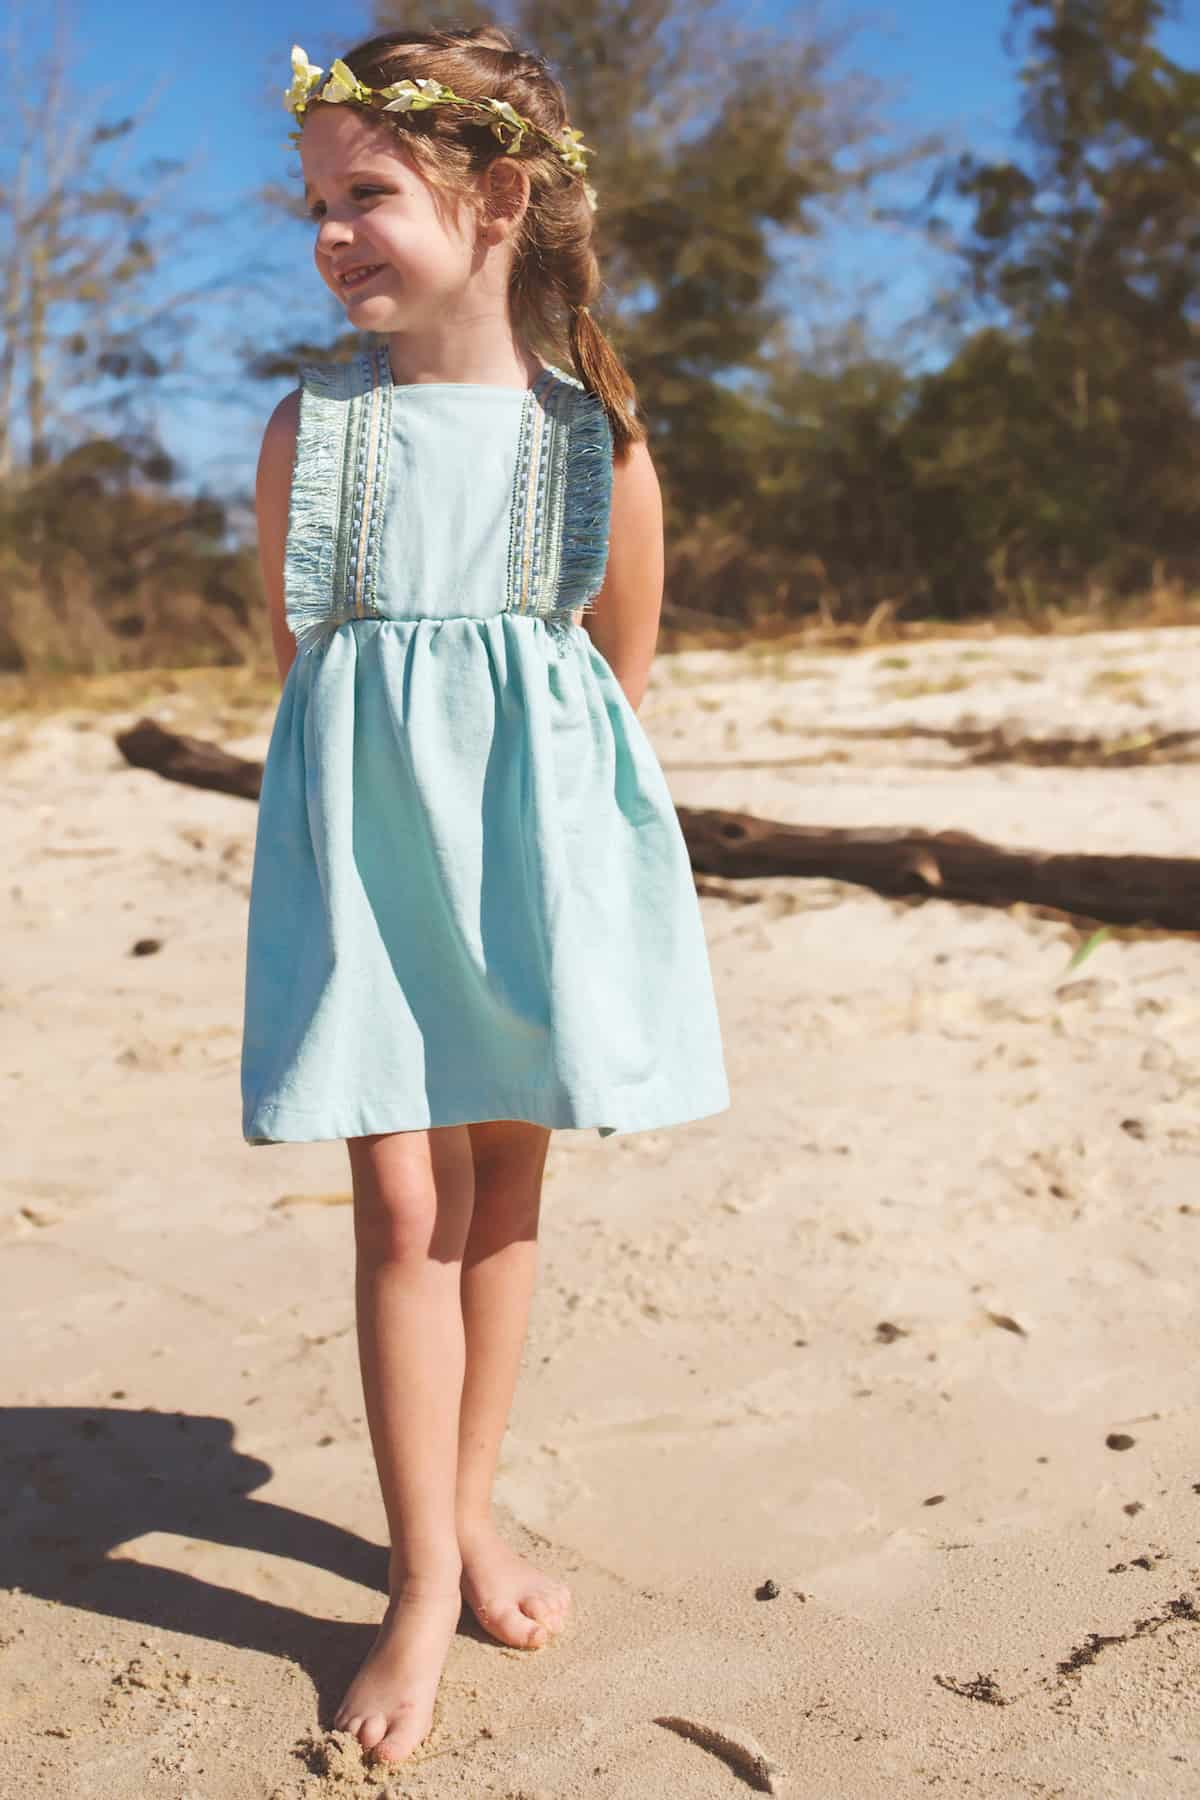 Vintage Boho Girls Dress - Handmade Beach Dress for Girls